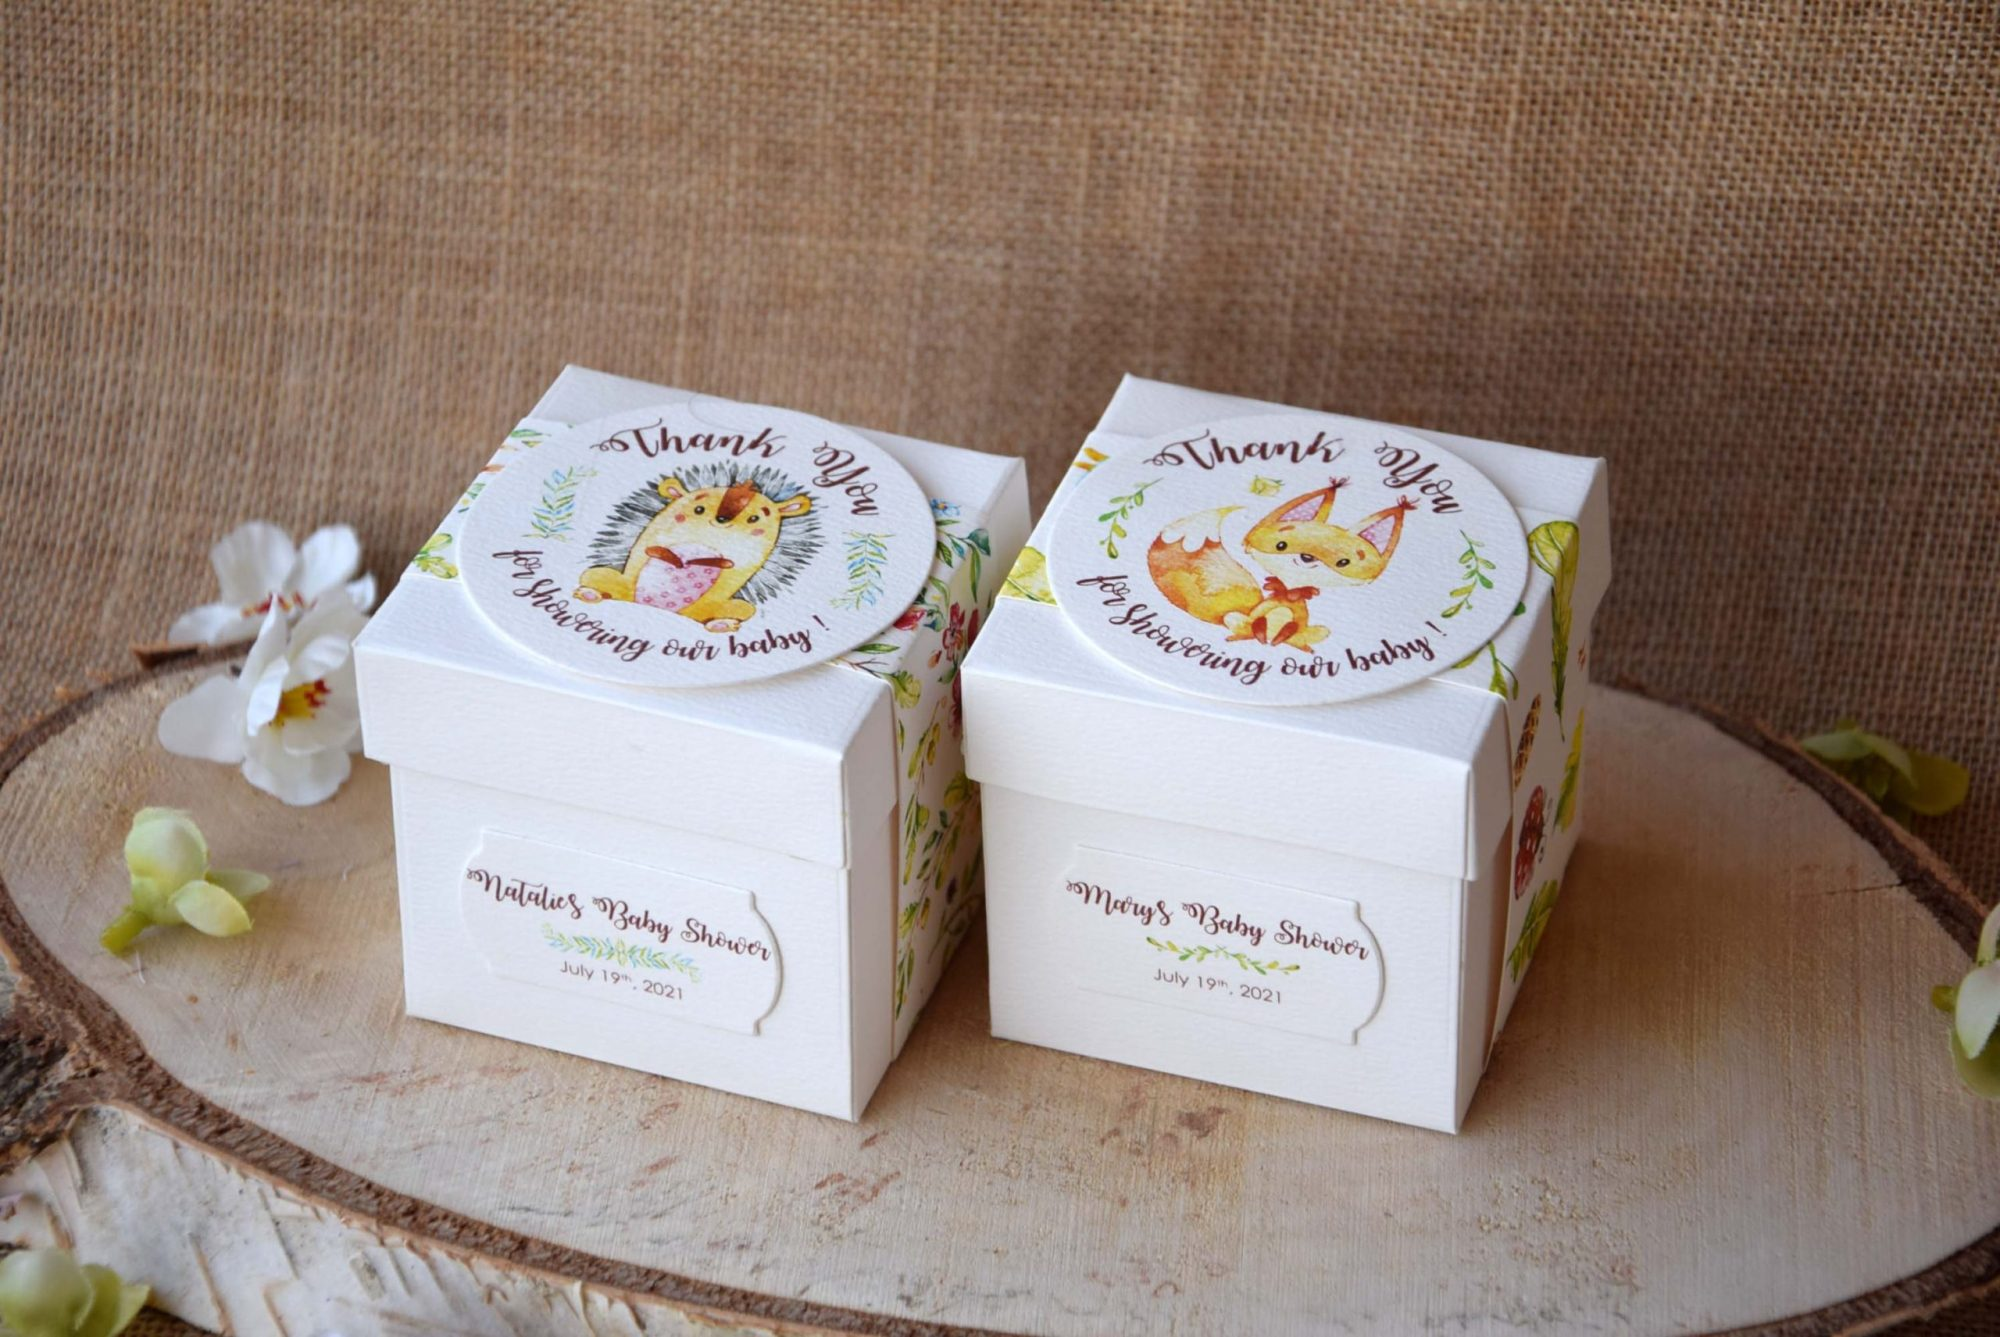 Personalized Square Baby Shower Favor Boxes